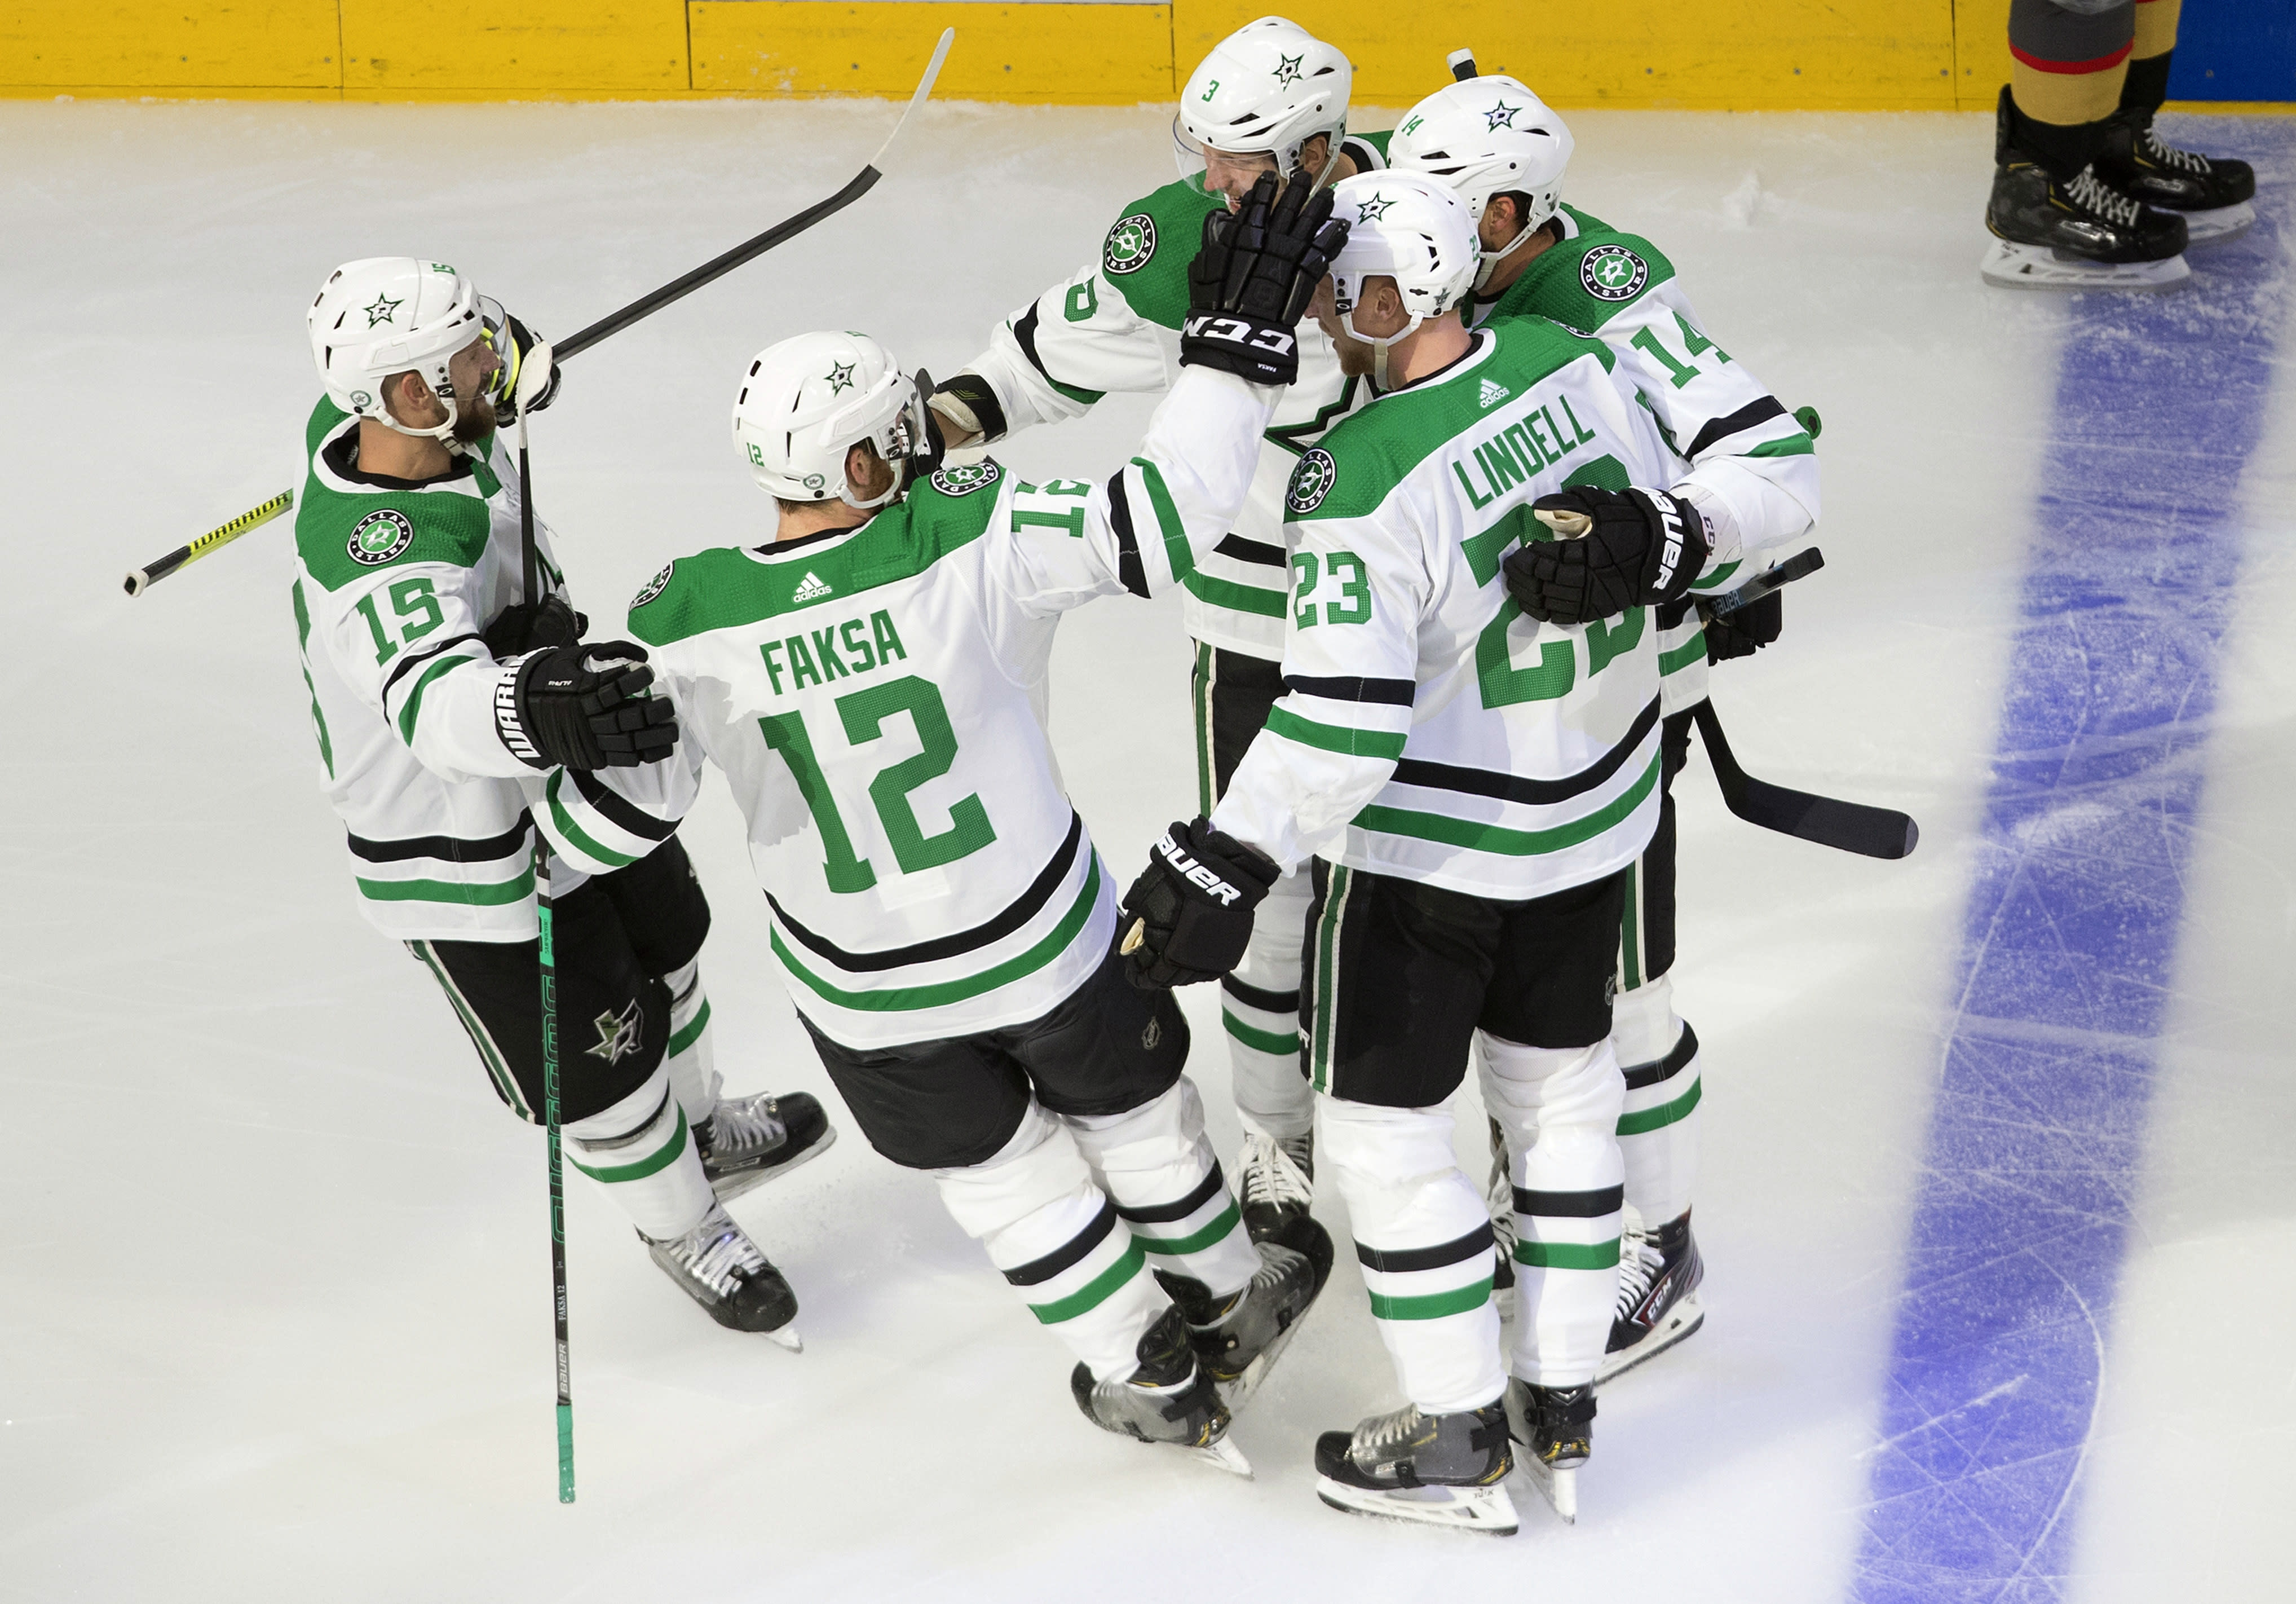 Dallas Stars' Blake Comeau (15), Radek Faksa (12), Esa Lindell (23), Jamie Benn (14) and John Klingberg (3) celebrate a goal by Klingberg against the Vegas Golden Knights during the first period of Game 1 of an NHL Western Conference final hockey game, Sunday, Sept. 6, 2020 in Edmonton, Alberta. (Jason Franson/The Canadian Press via AP)